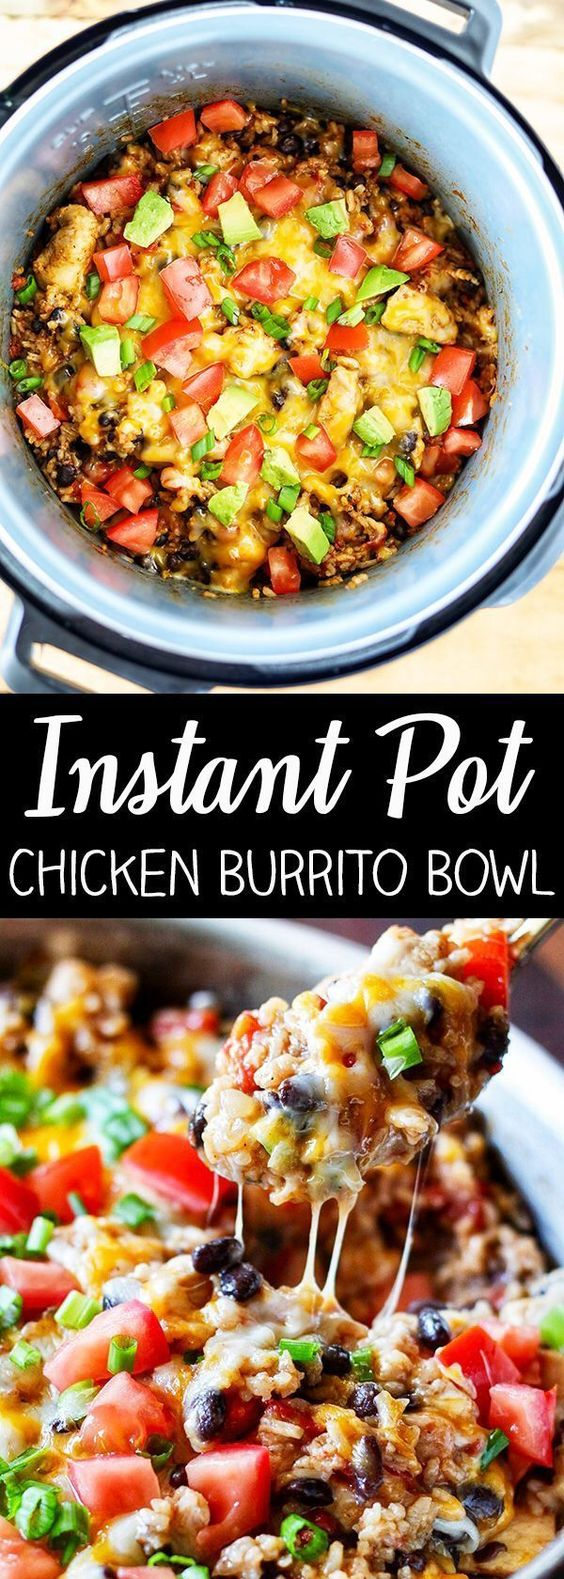 INSTANT POT CHICKEN BURRITO BOWL